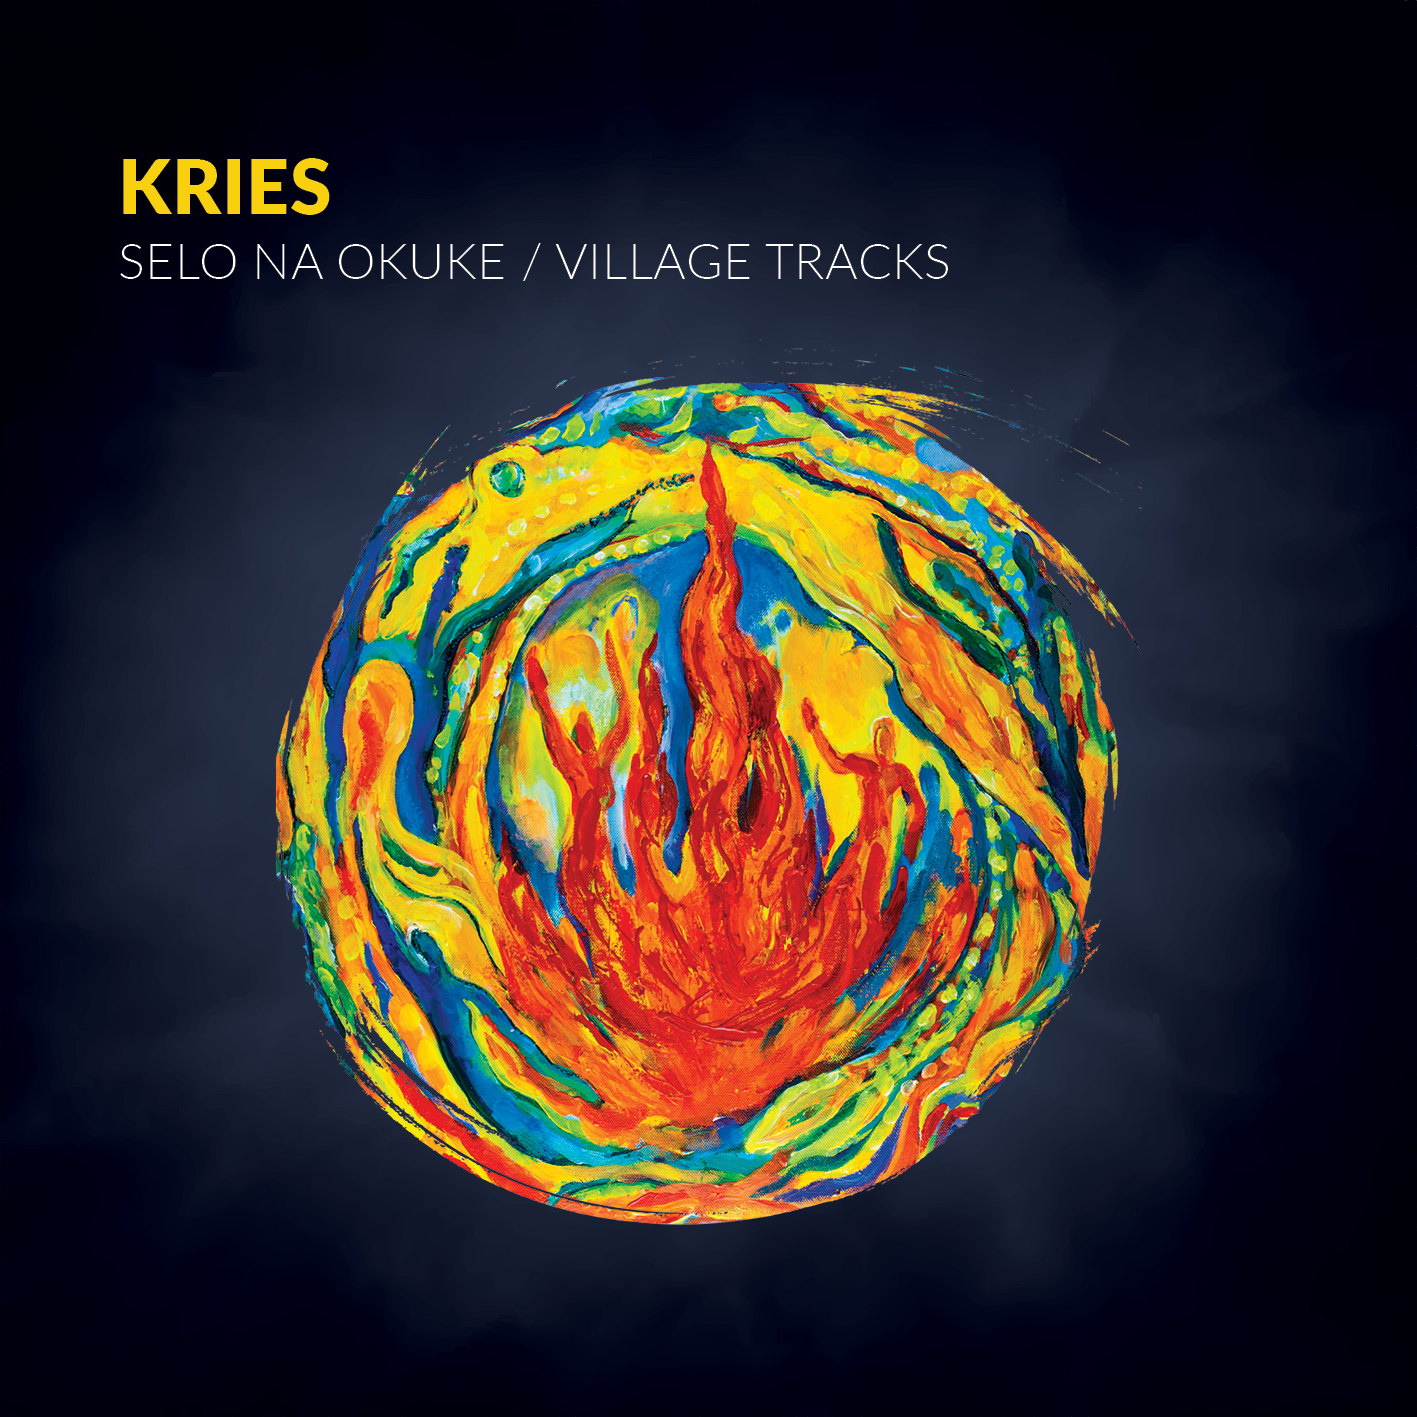 KRIES – Selo Na Okuke / Village Tracks